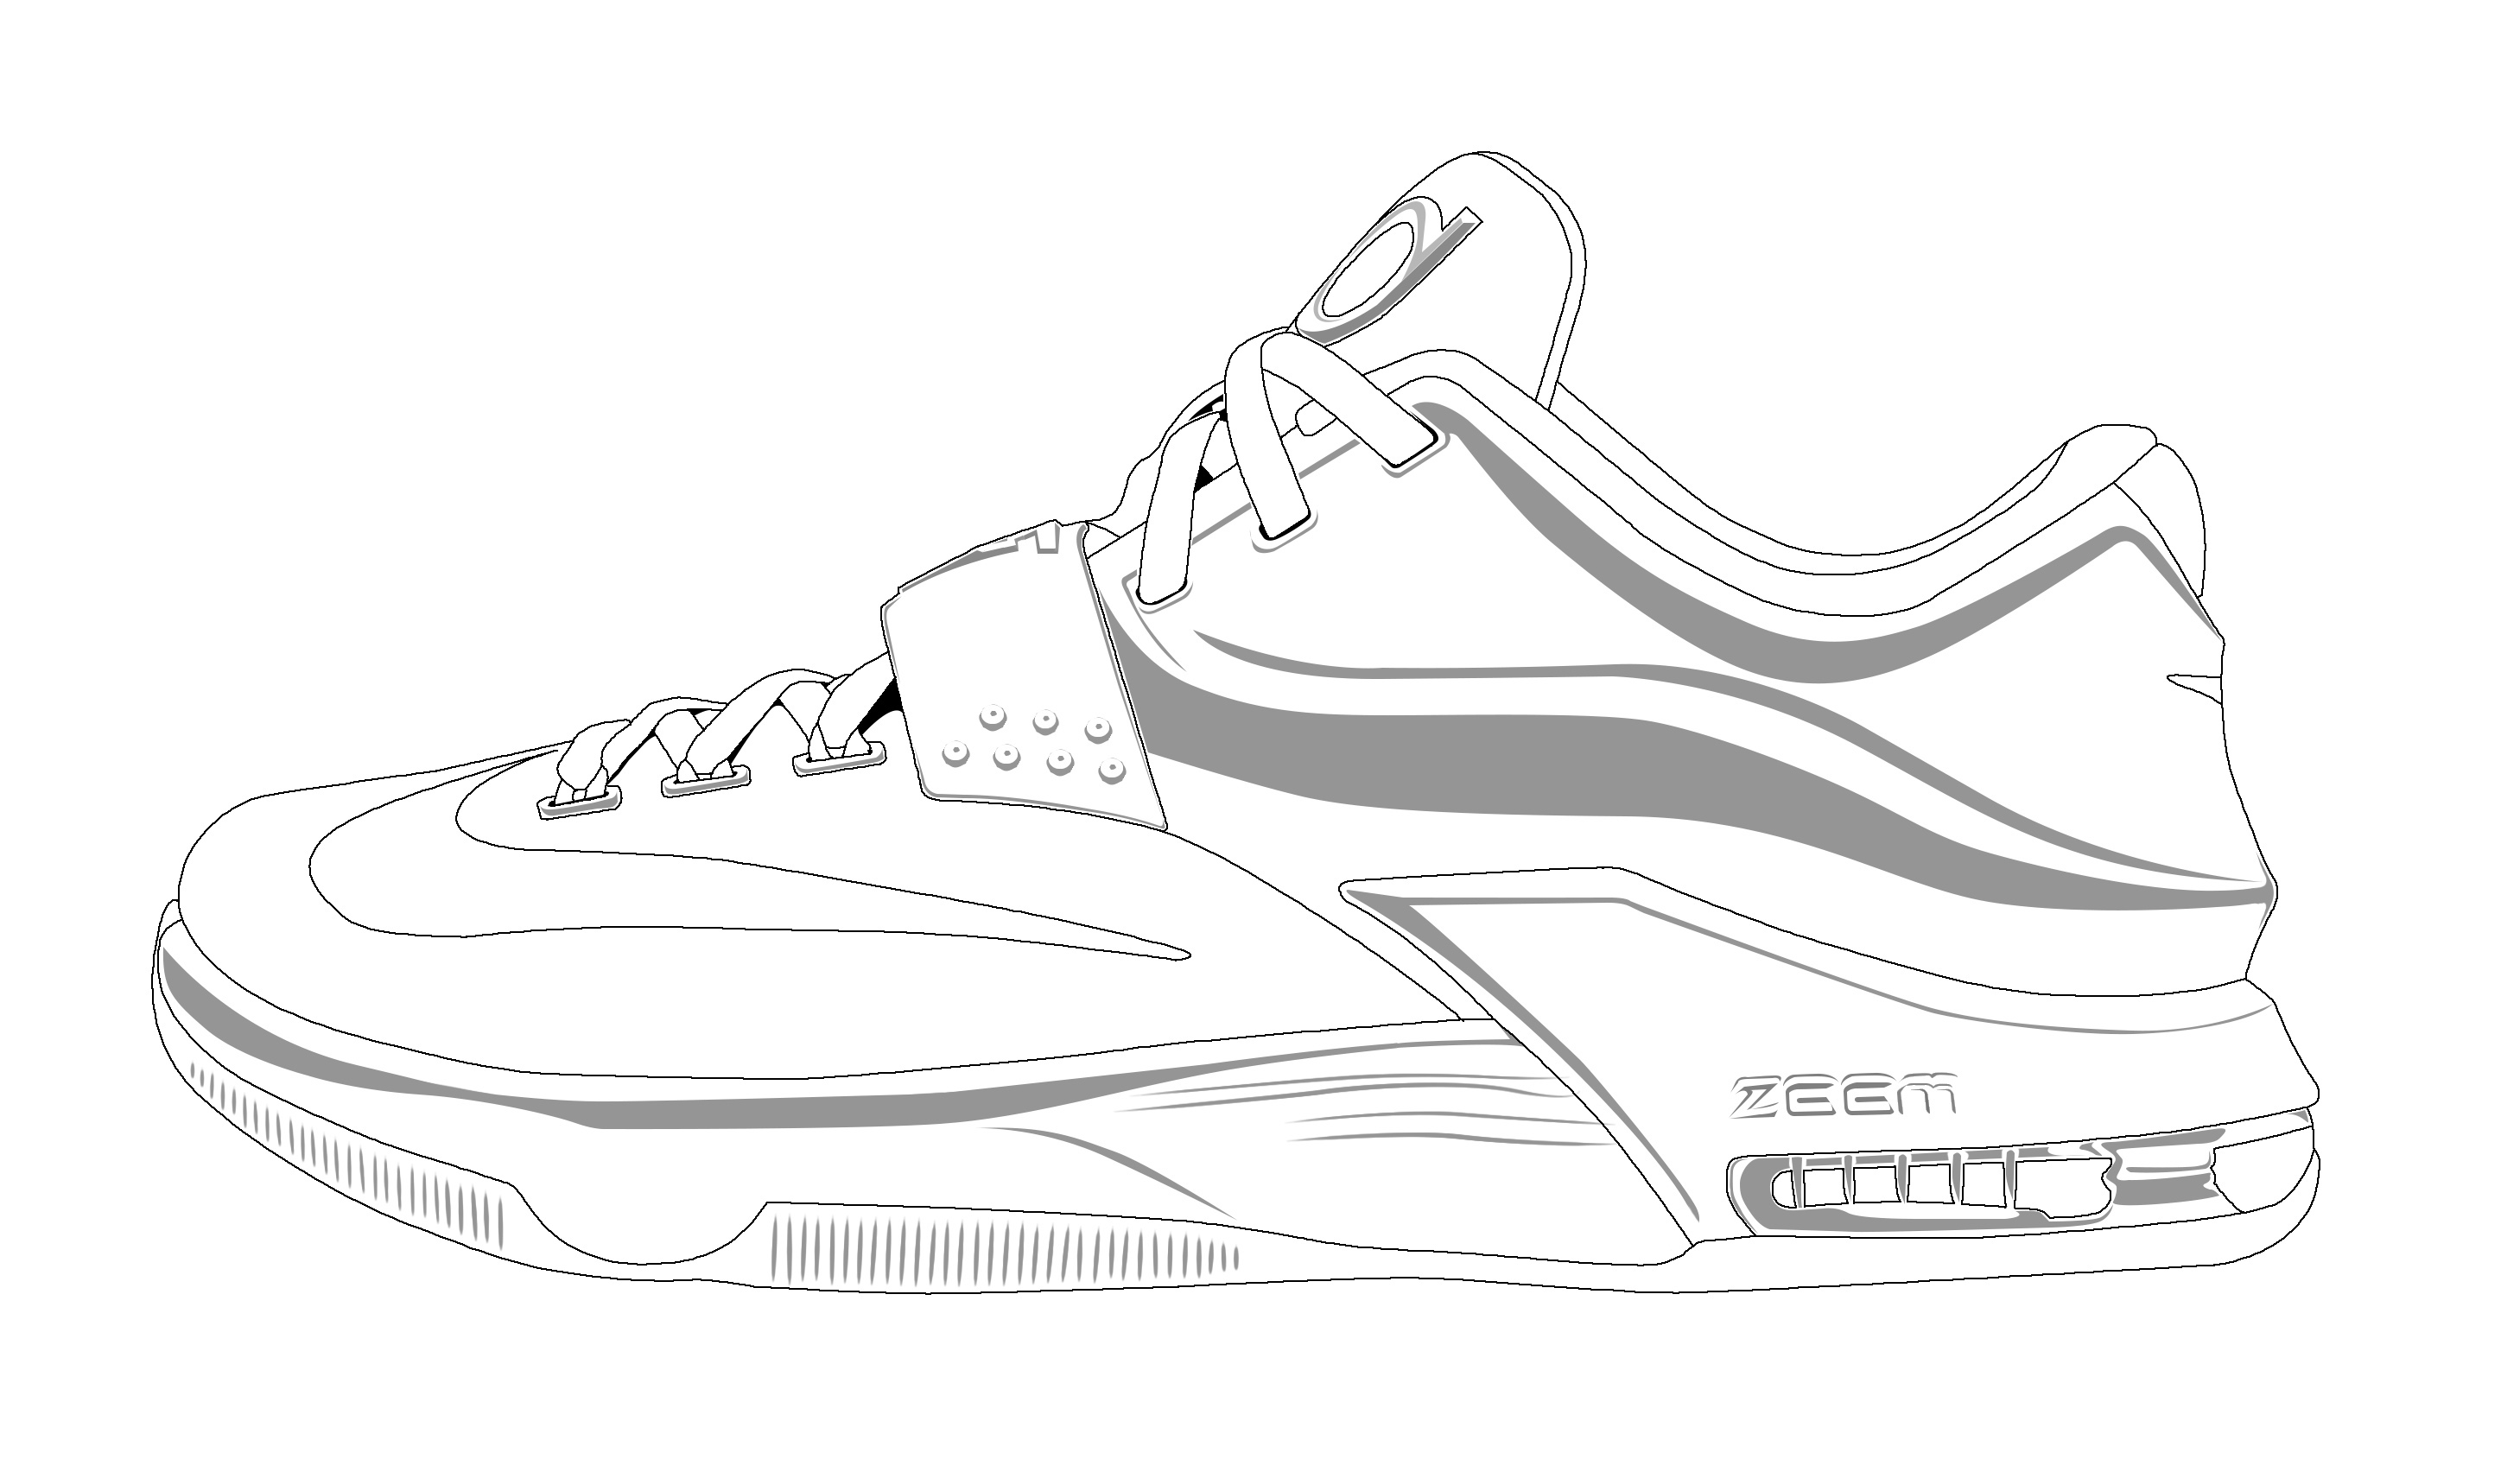 2917x1704 Stephen Curry Shoes Coloring Pages Under Shoes Nba Shoes Coloring